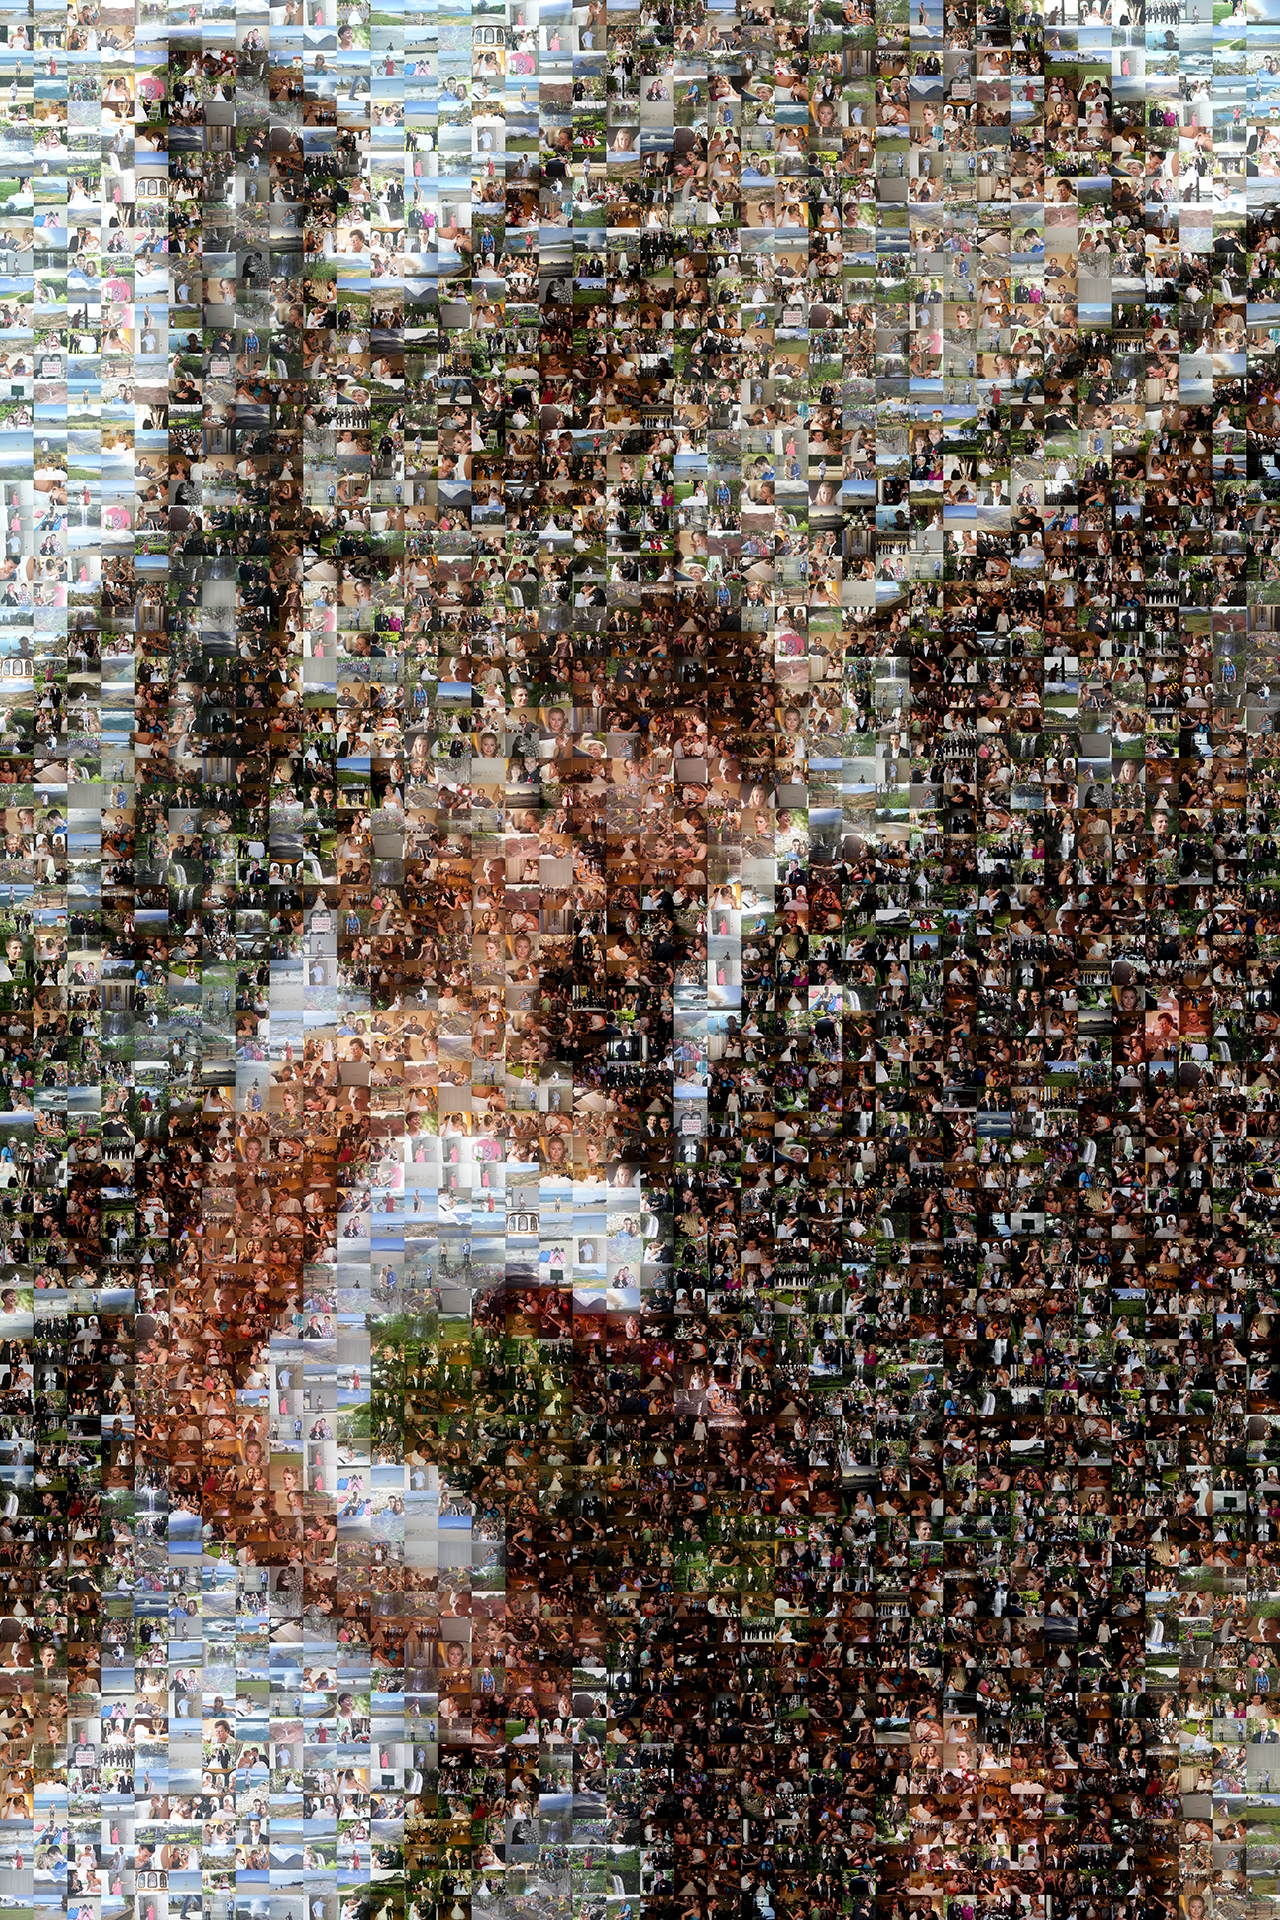 photo mosaic created using 496 photos of the happy couple